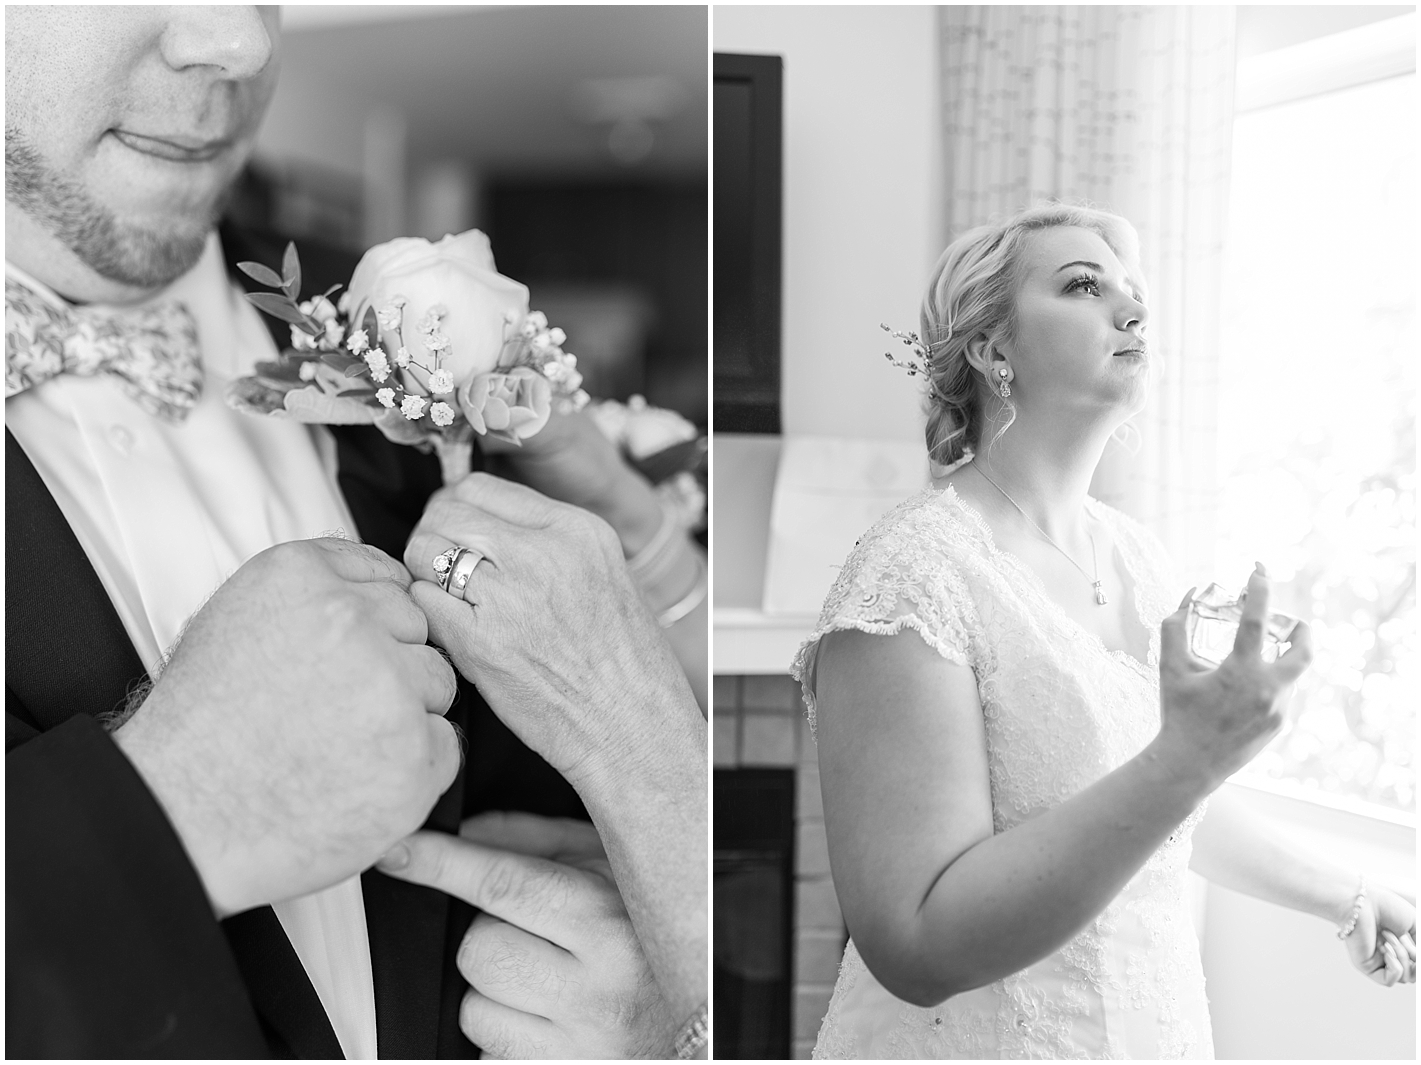 Wedding Day Getting Ready by Alyssa Parker Photography